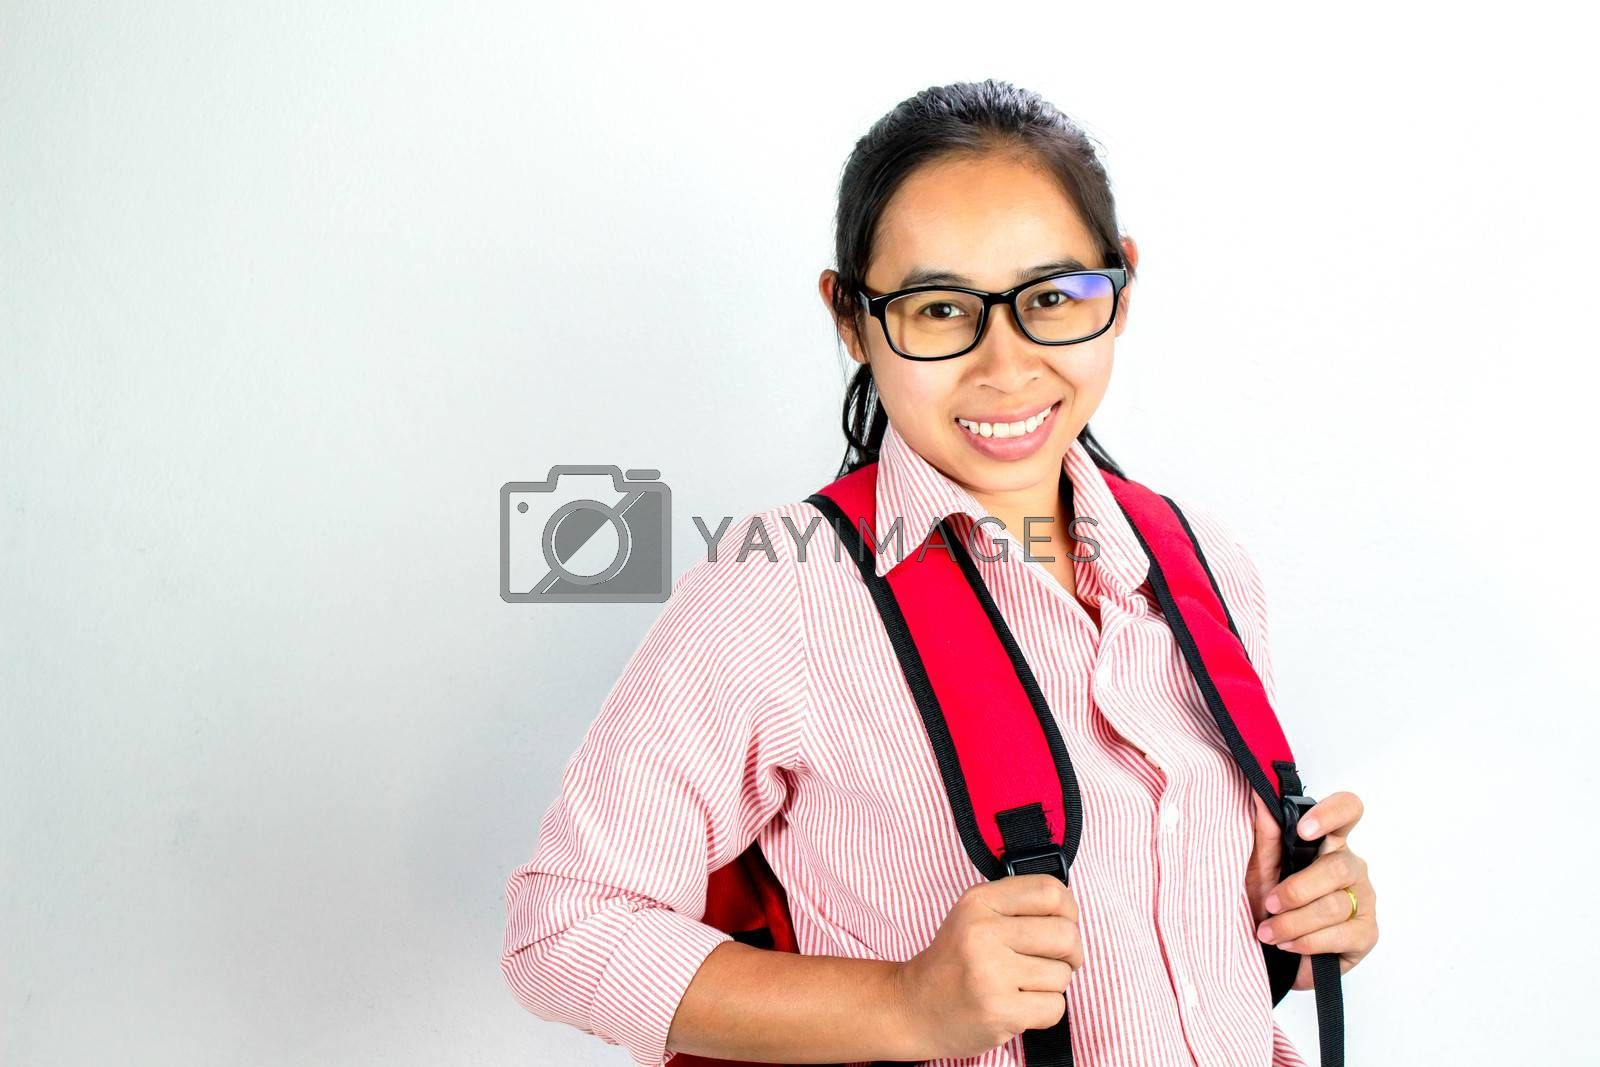 Portrait of Asian woman smiling face, wearing glasses with a red bagpack, standing over white background with copy space. by TEERASAK